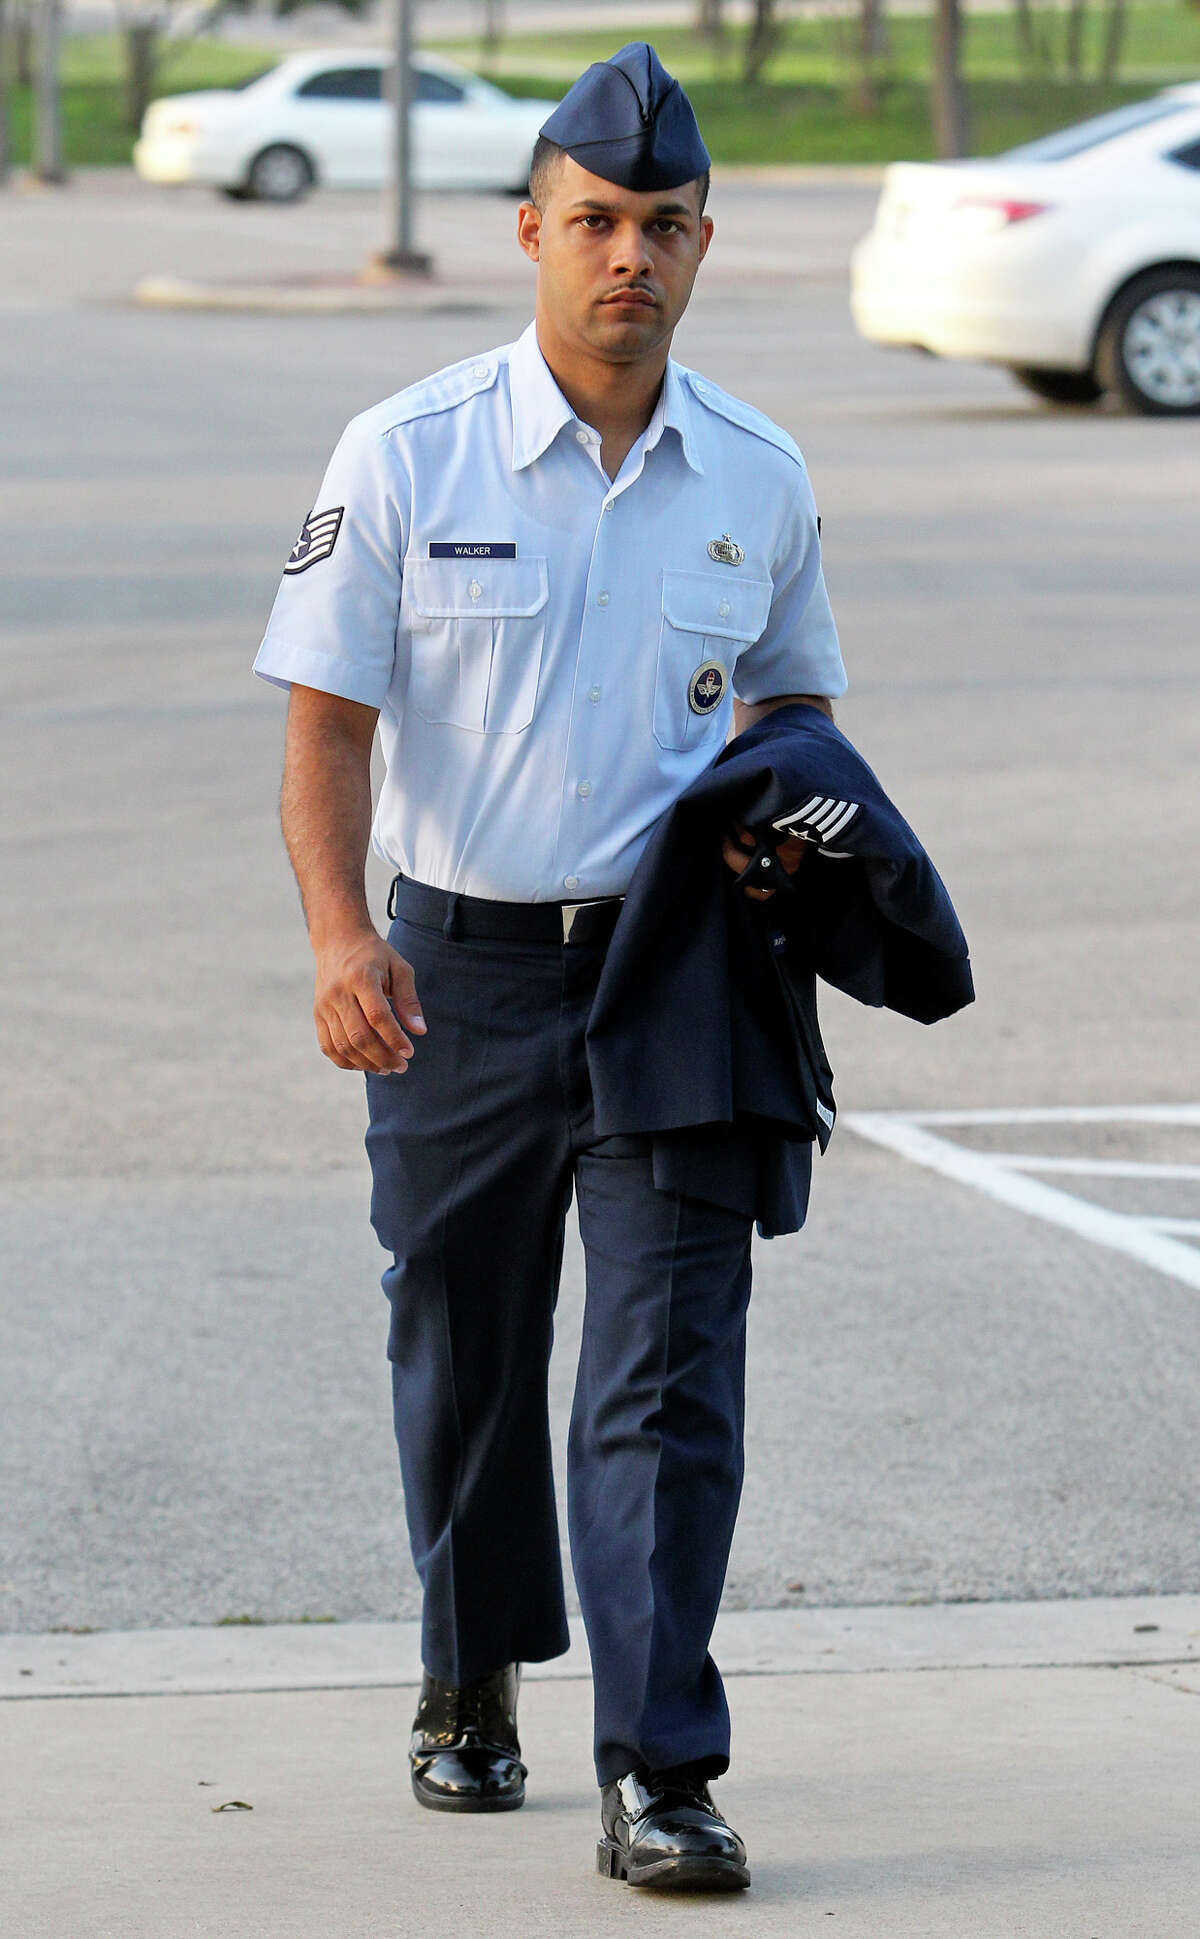 Air Force Sgt. Luis Walker enters the 37th Training Wing Headquarters for sentencing on July 21, 2012.